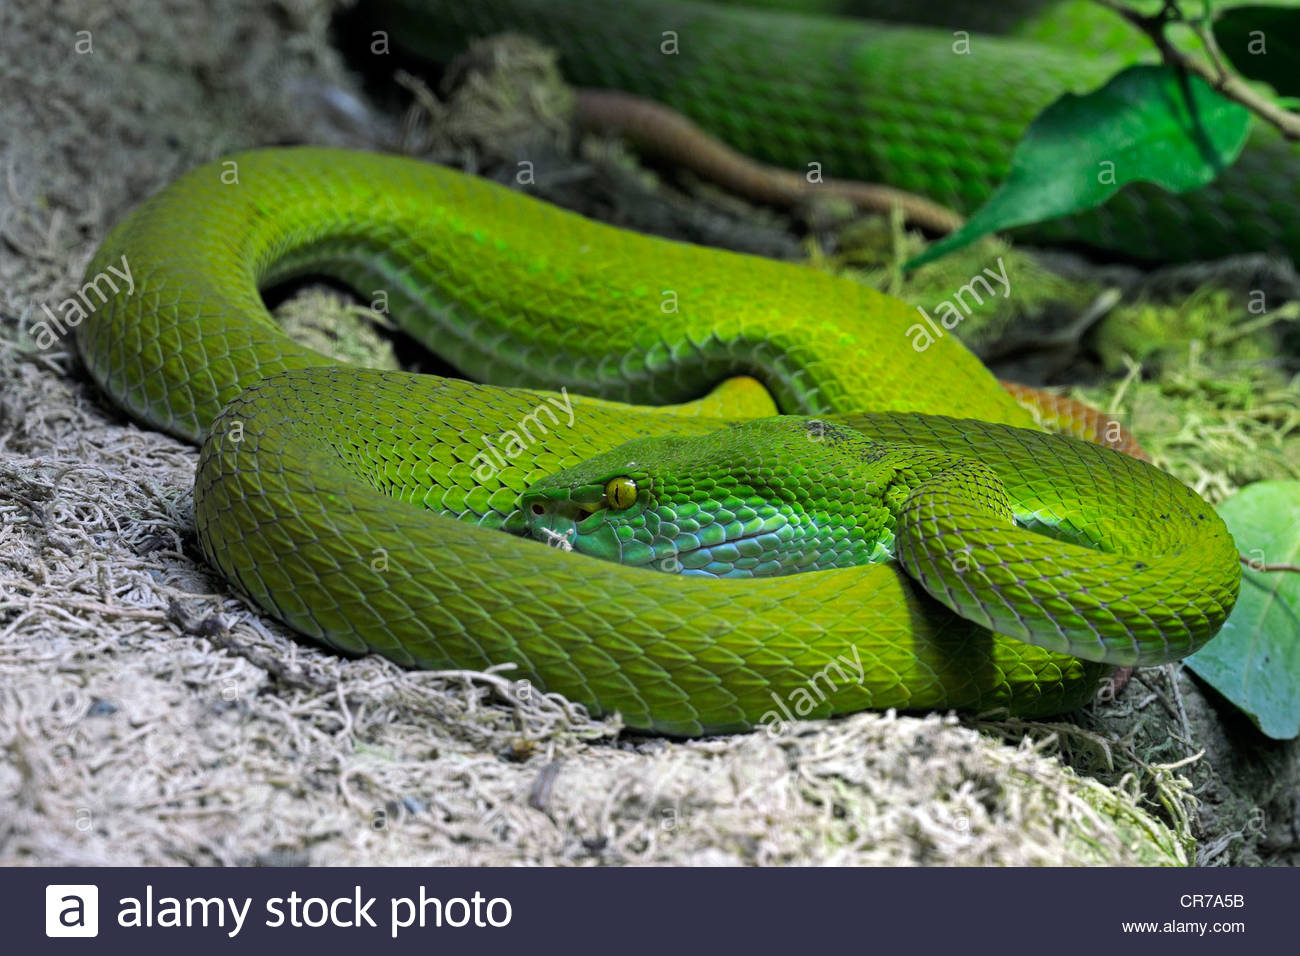 White-lipped Pit Viper svg #17, Download drawings